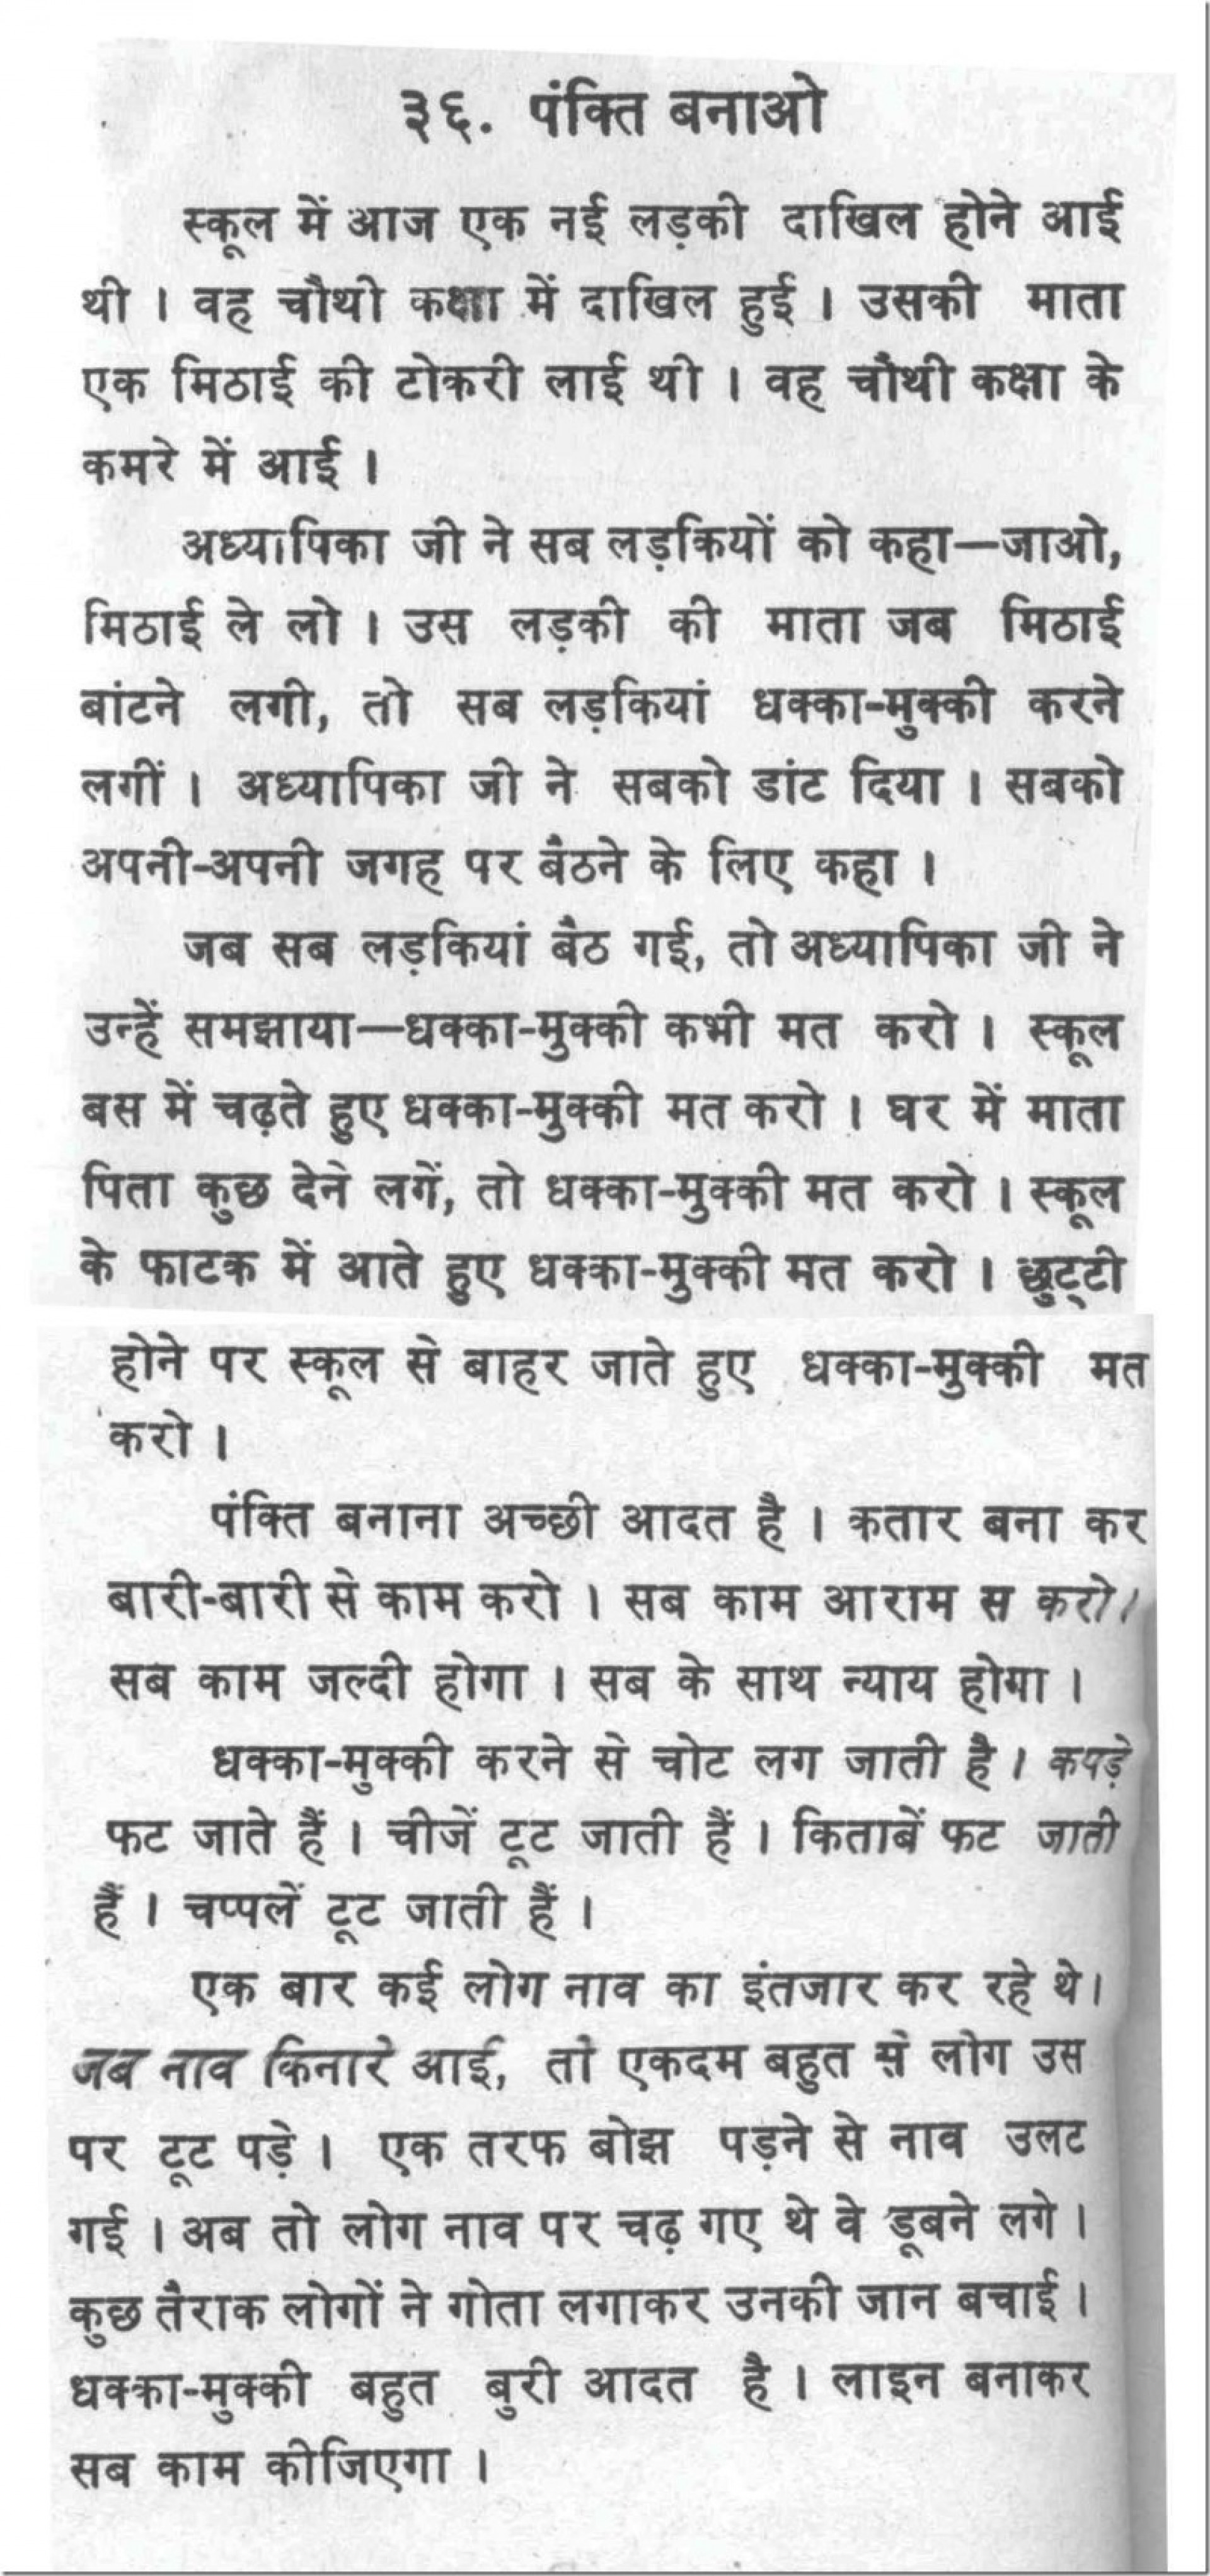 003 10030 Thumbresize8002c1704 Good Habits Essay In Hindi Exceptional Reading Habit Wikipedia 1920